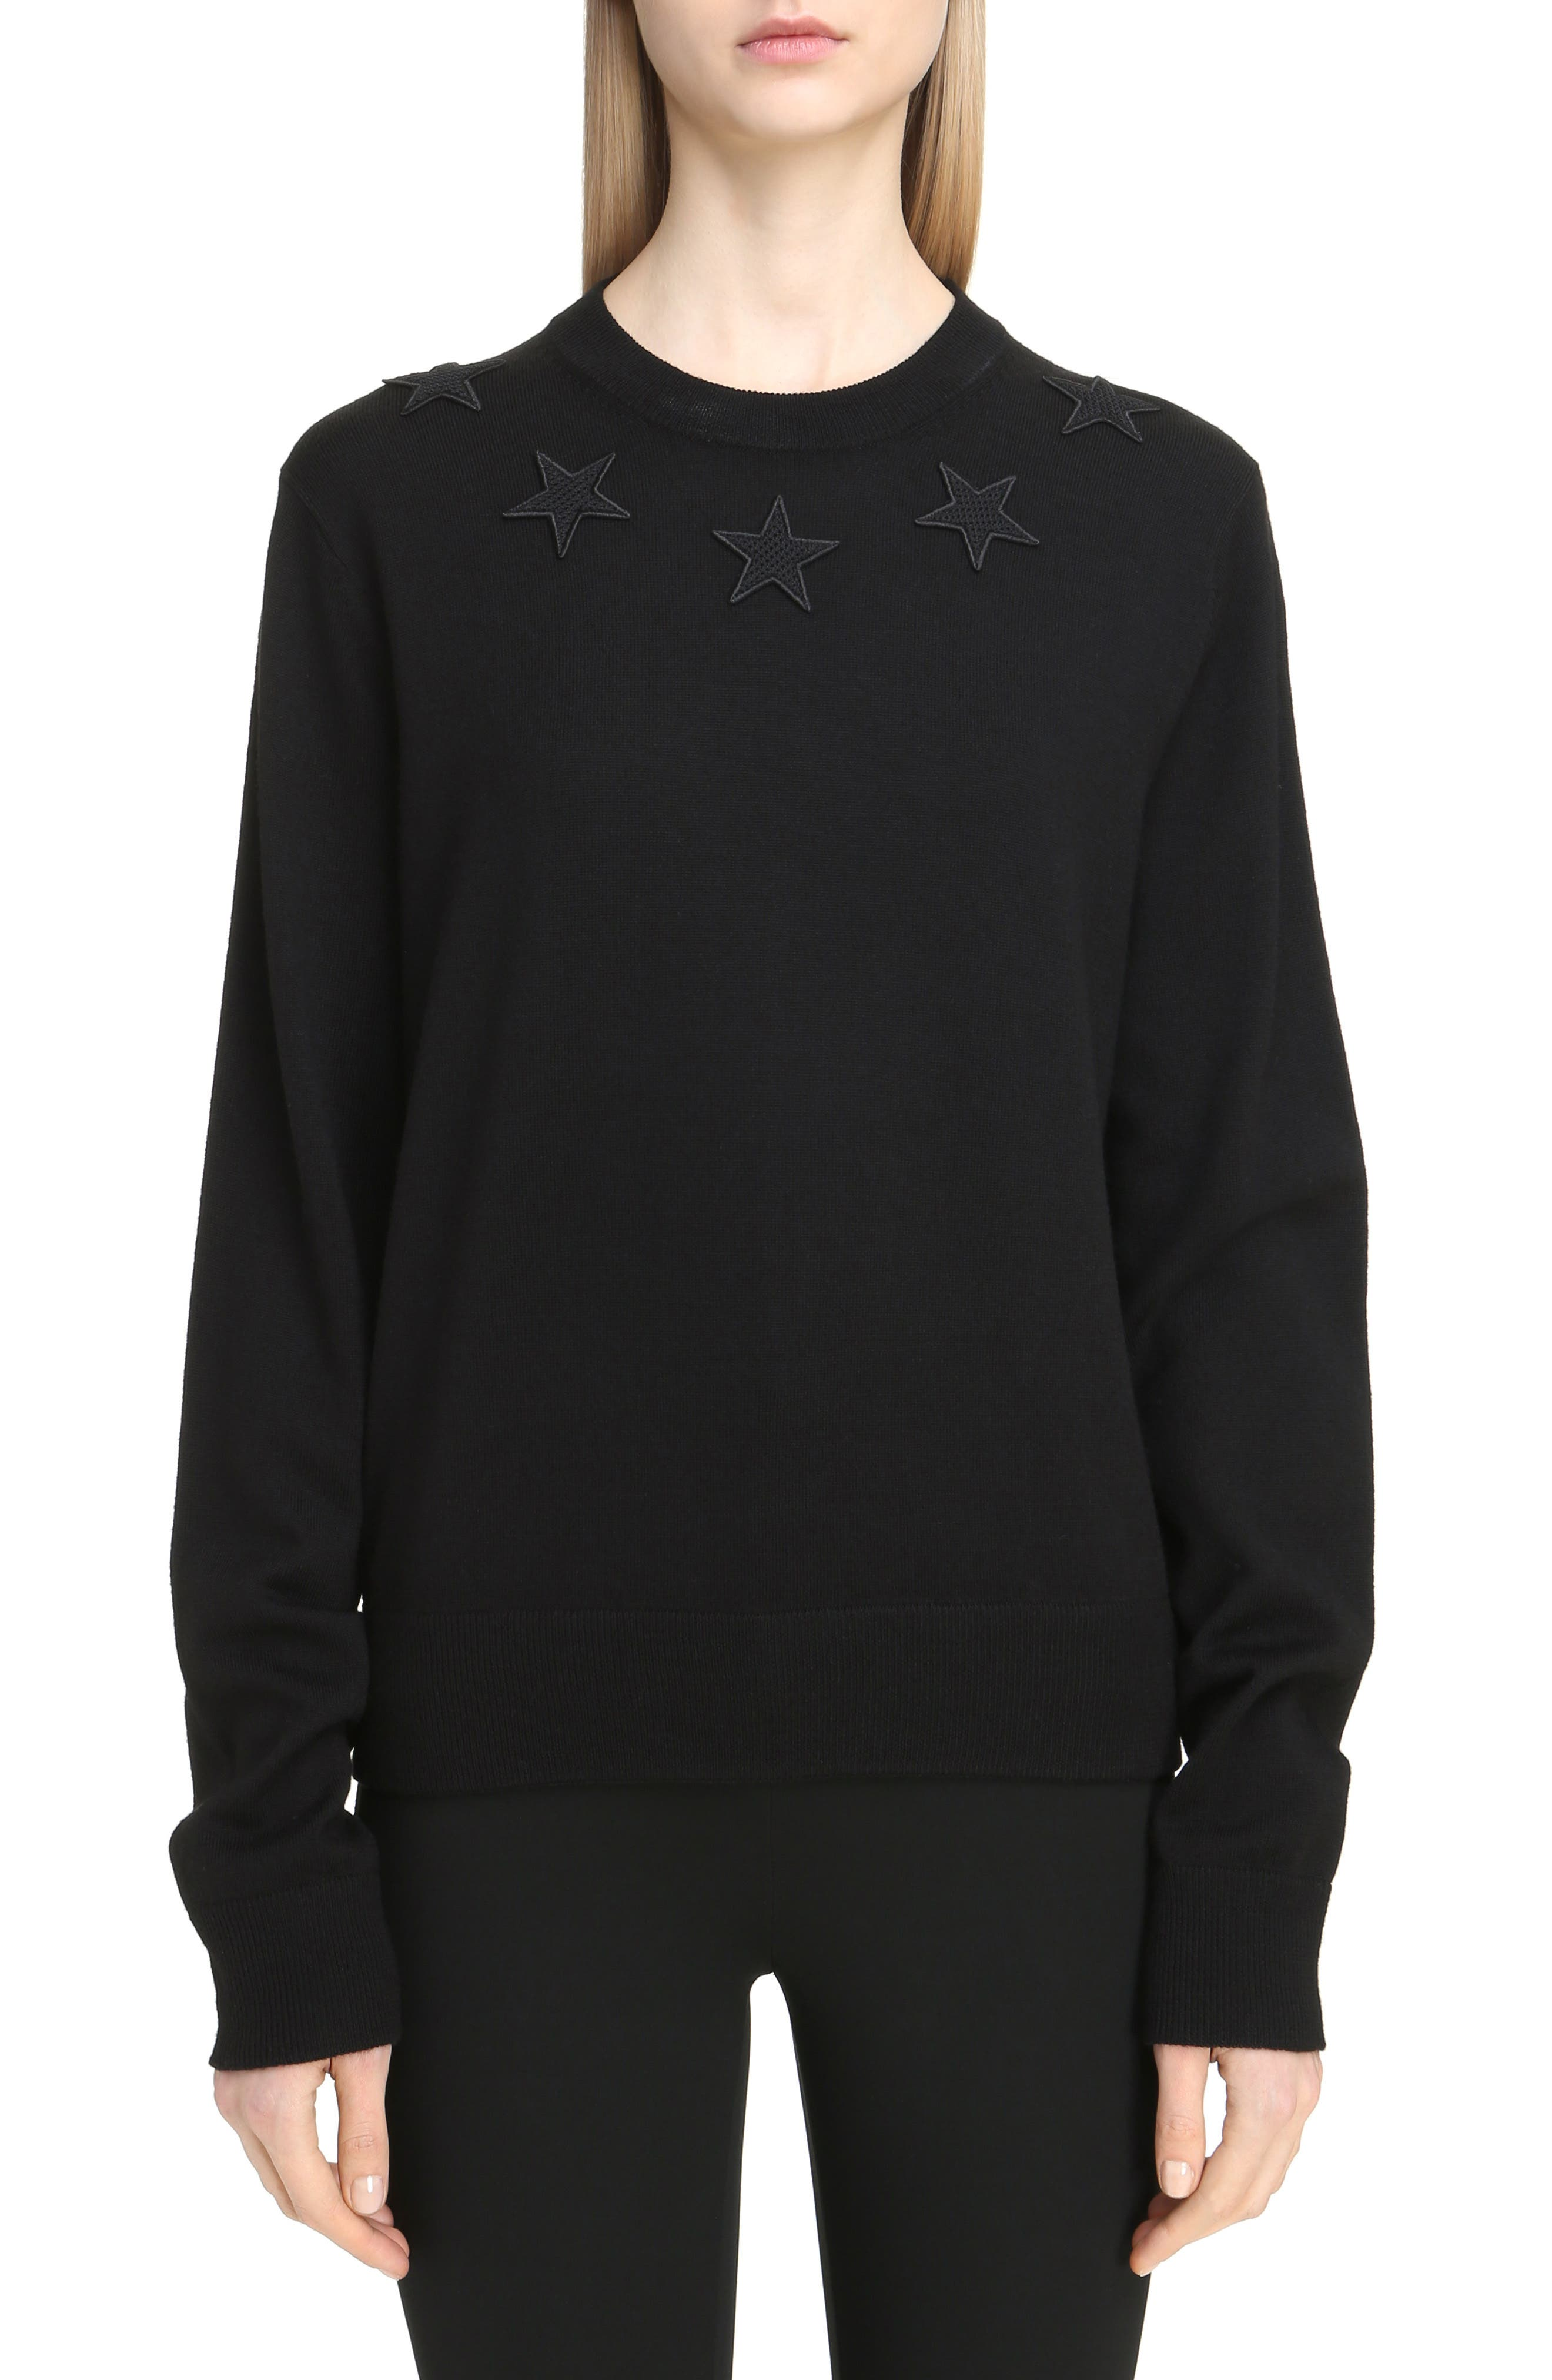 Alternate Image 1 Selected - Givenchy Star Embellished Wool Sweater